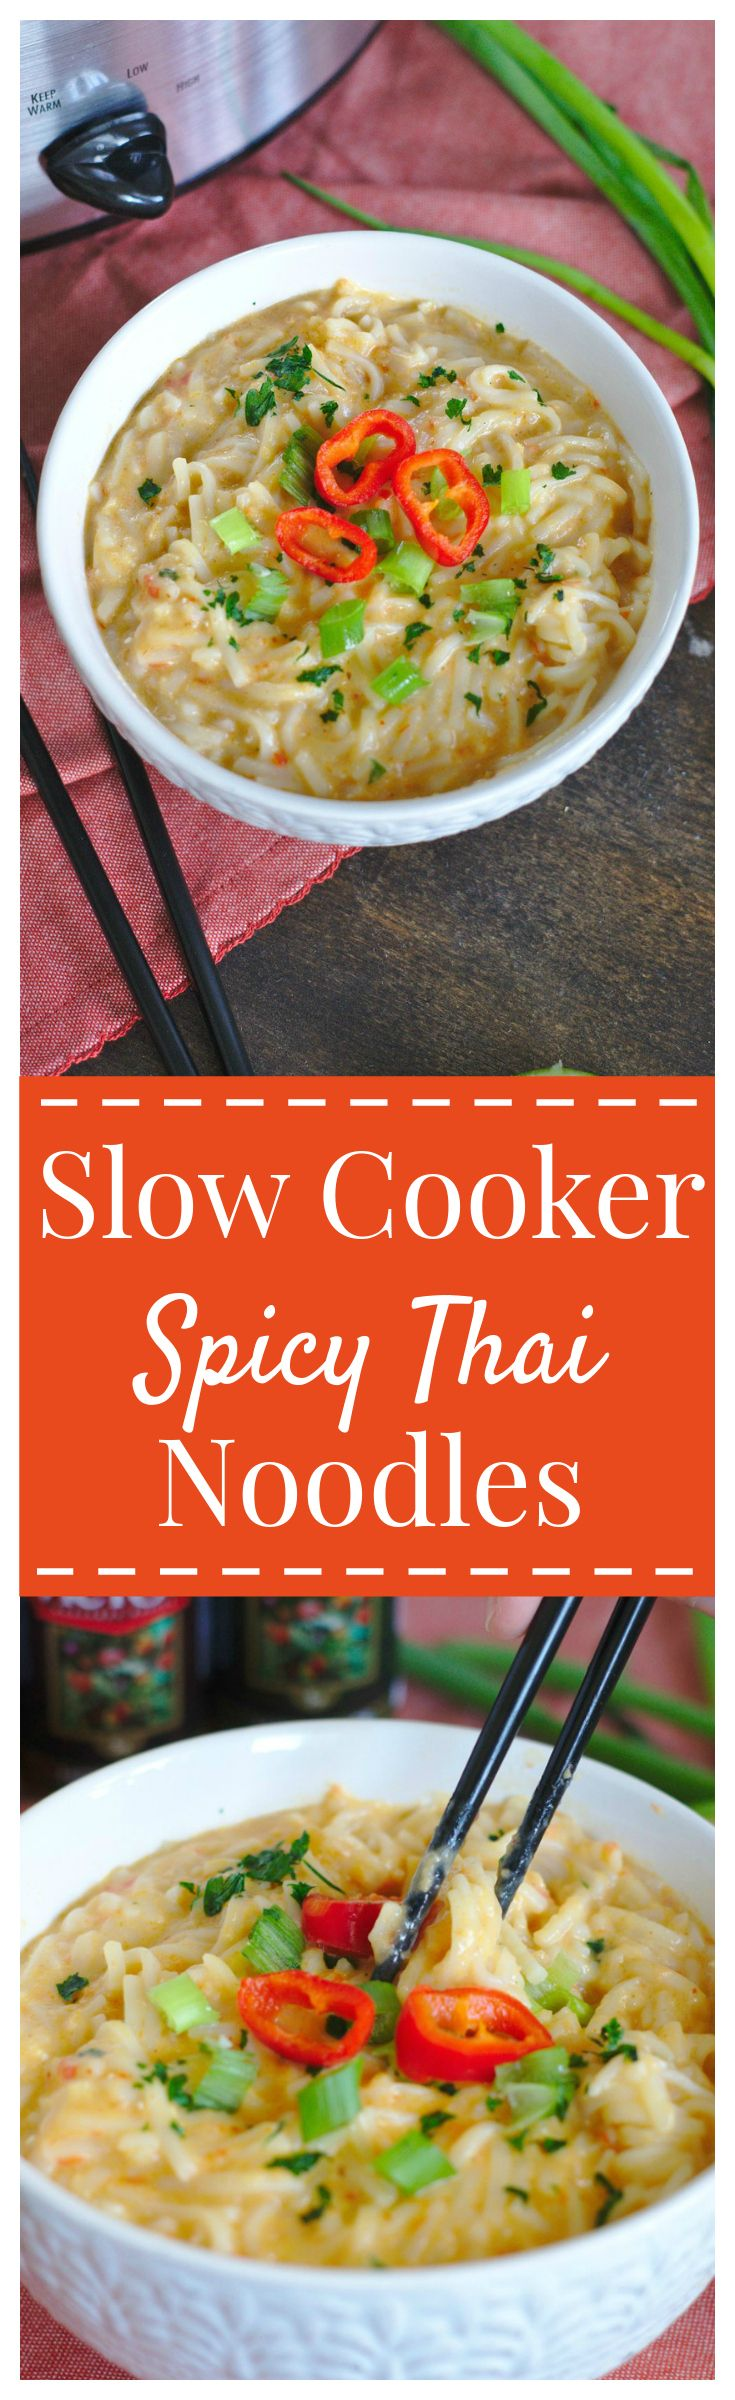 Slow Cooker Spicy Thai Noodles – A simple to make meal that packs a punch! Rice noodles slow cooked in a spicy coconut Thai sauce! #ad #TinyPepperHugeTaste #DonVictorFoods #slowcooker #thai #noodles #spicy @donvictor